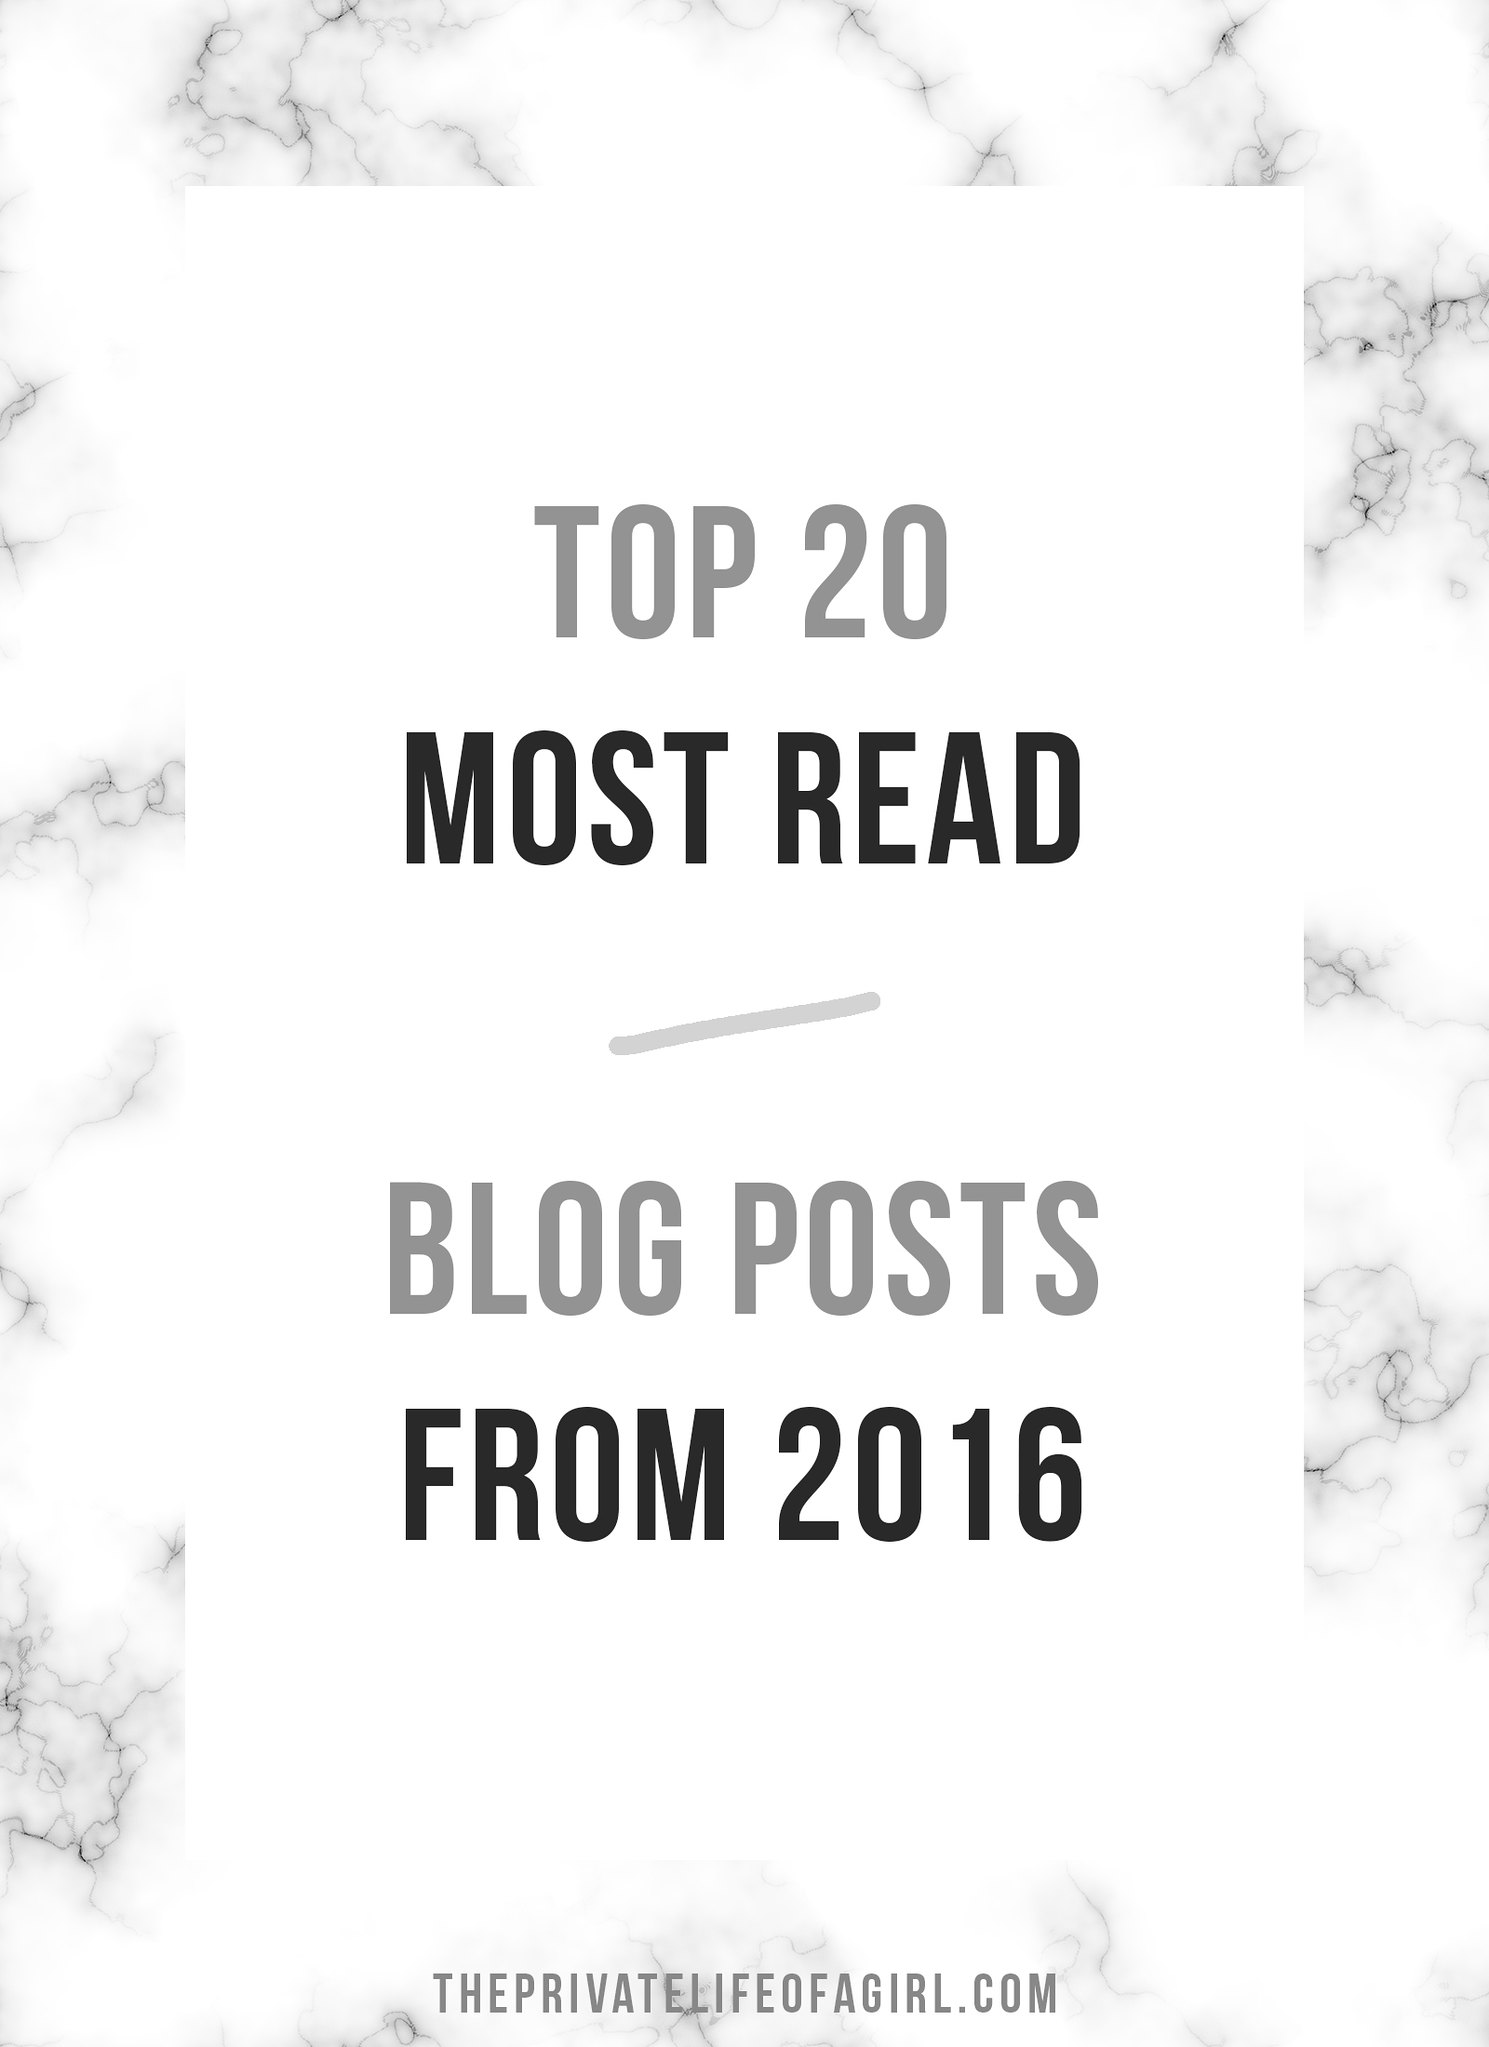 The Top 20 Blog Posts Of The Past Year